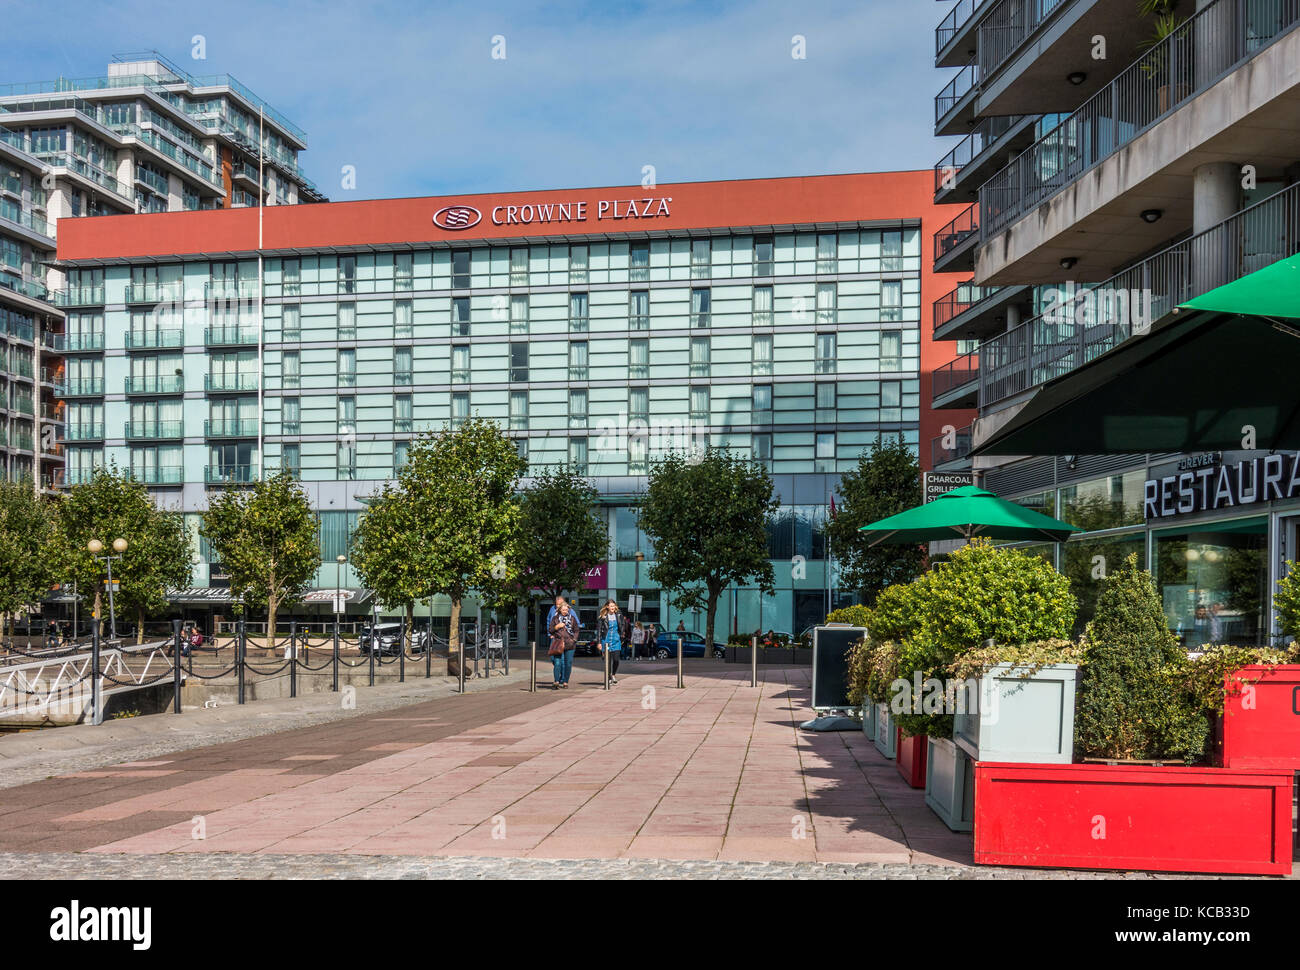 Crowne Plaza hotel, paved area and surrounding buildings, with people walking nearby, Royal Victoria Dock, Docklands, - Stock Image